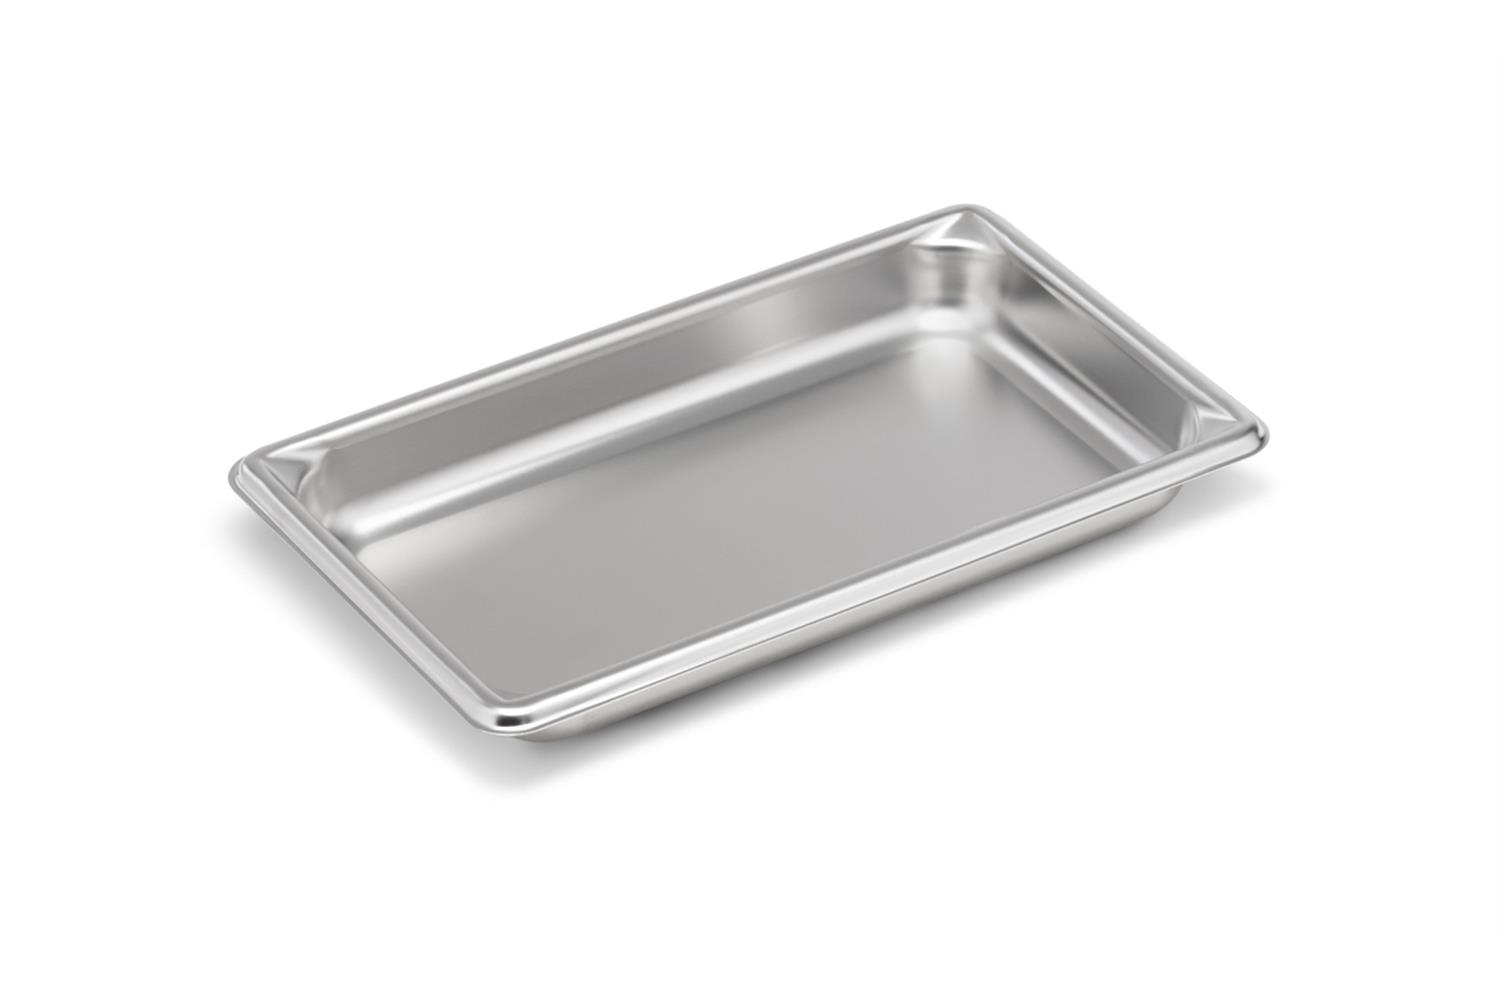 Vollrath 30412 Super Pan V 1/4 Size Stainless Steel Steam Table Pan